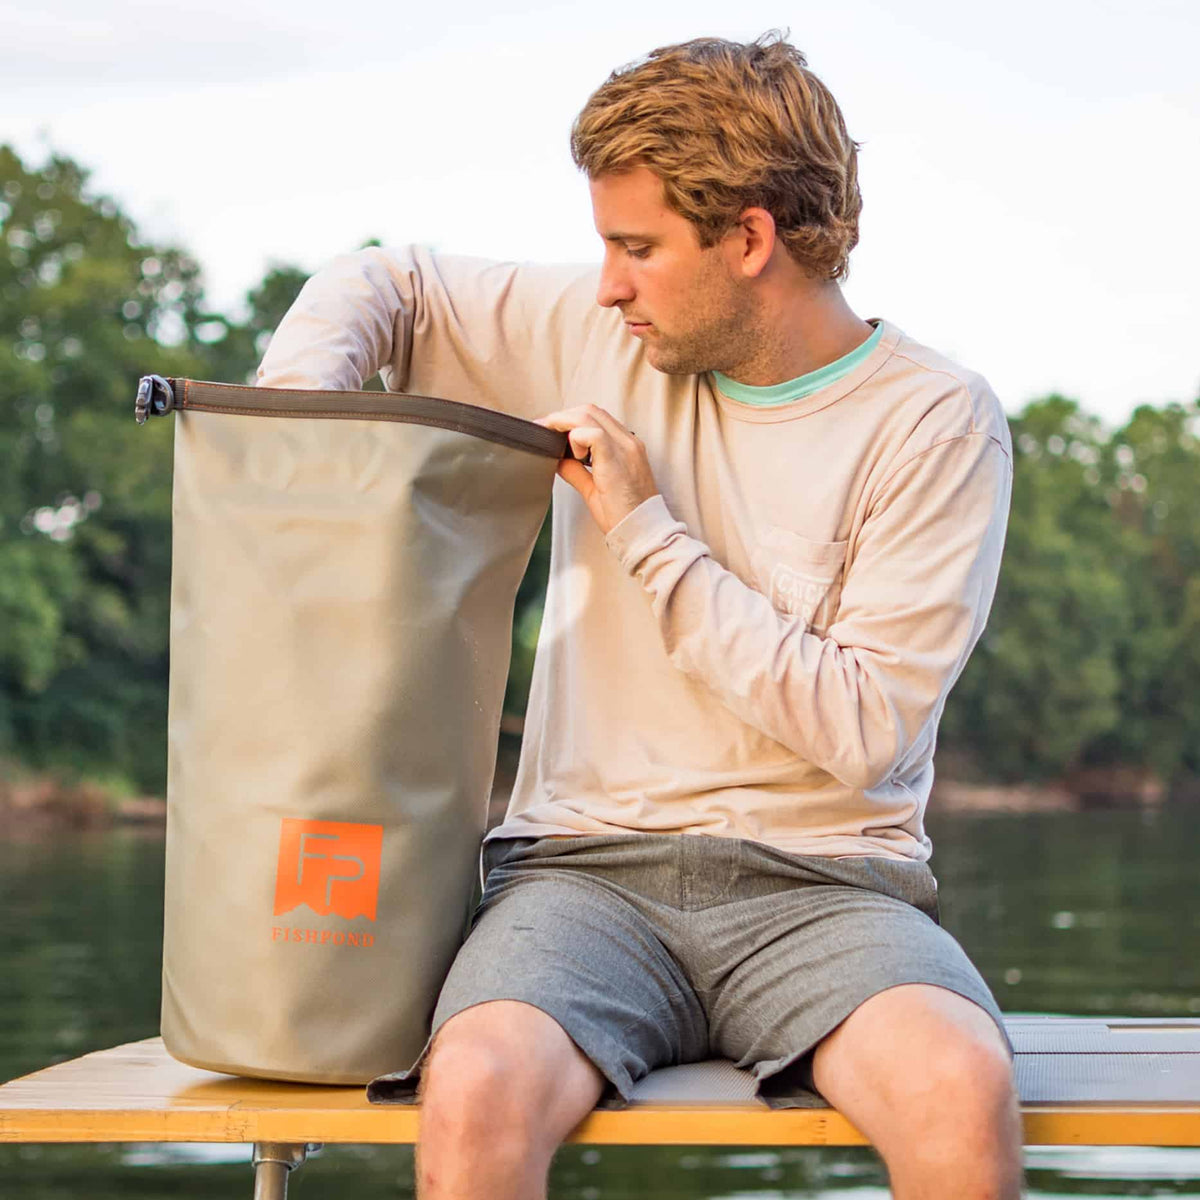 Fishpond Thunderhead Roll Top Dry Bag Shale On Boat With Person